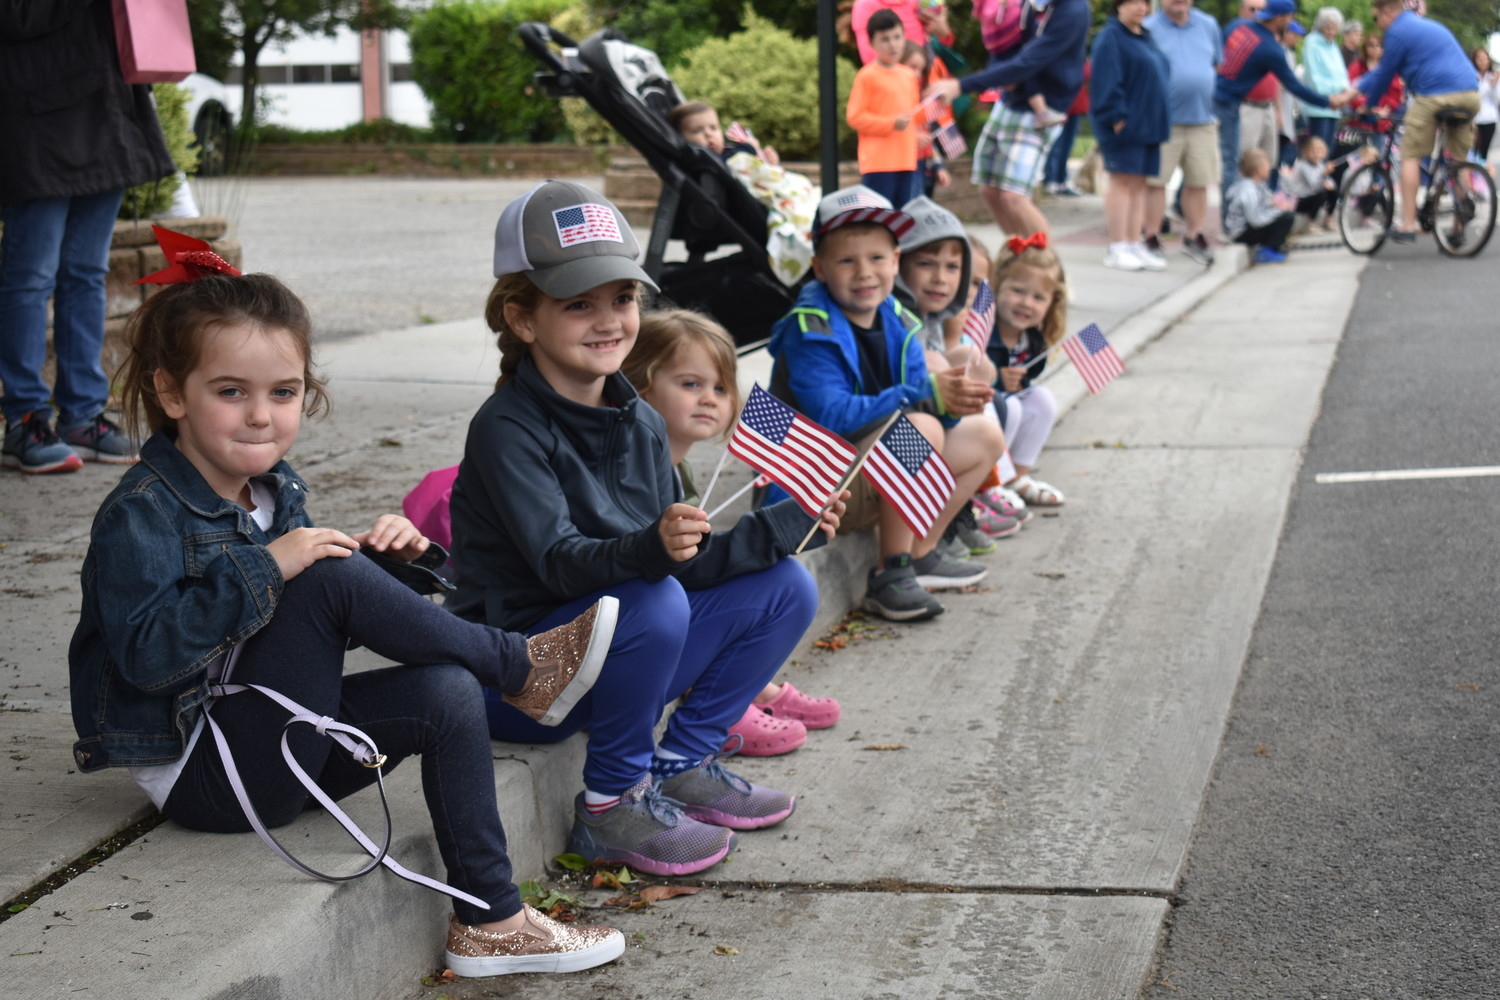 Children gathered to watch the parade.